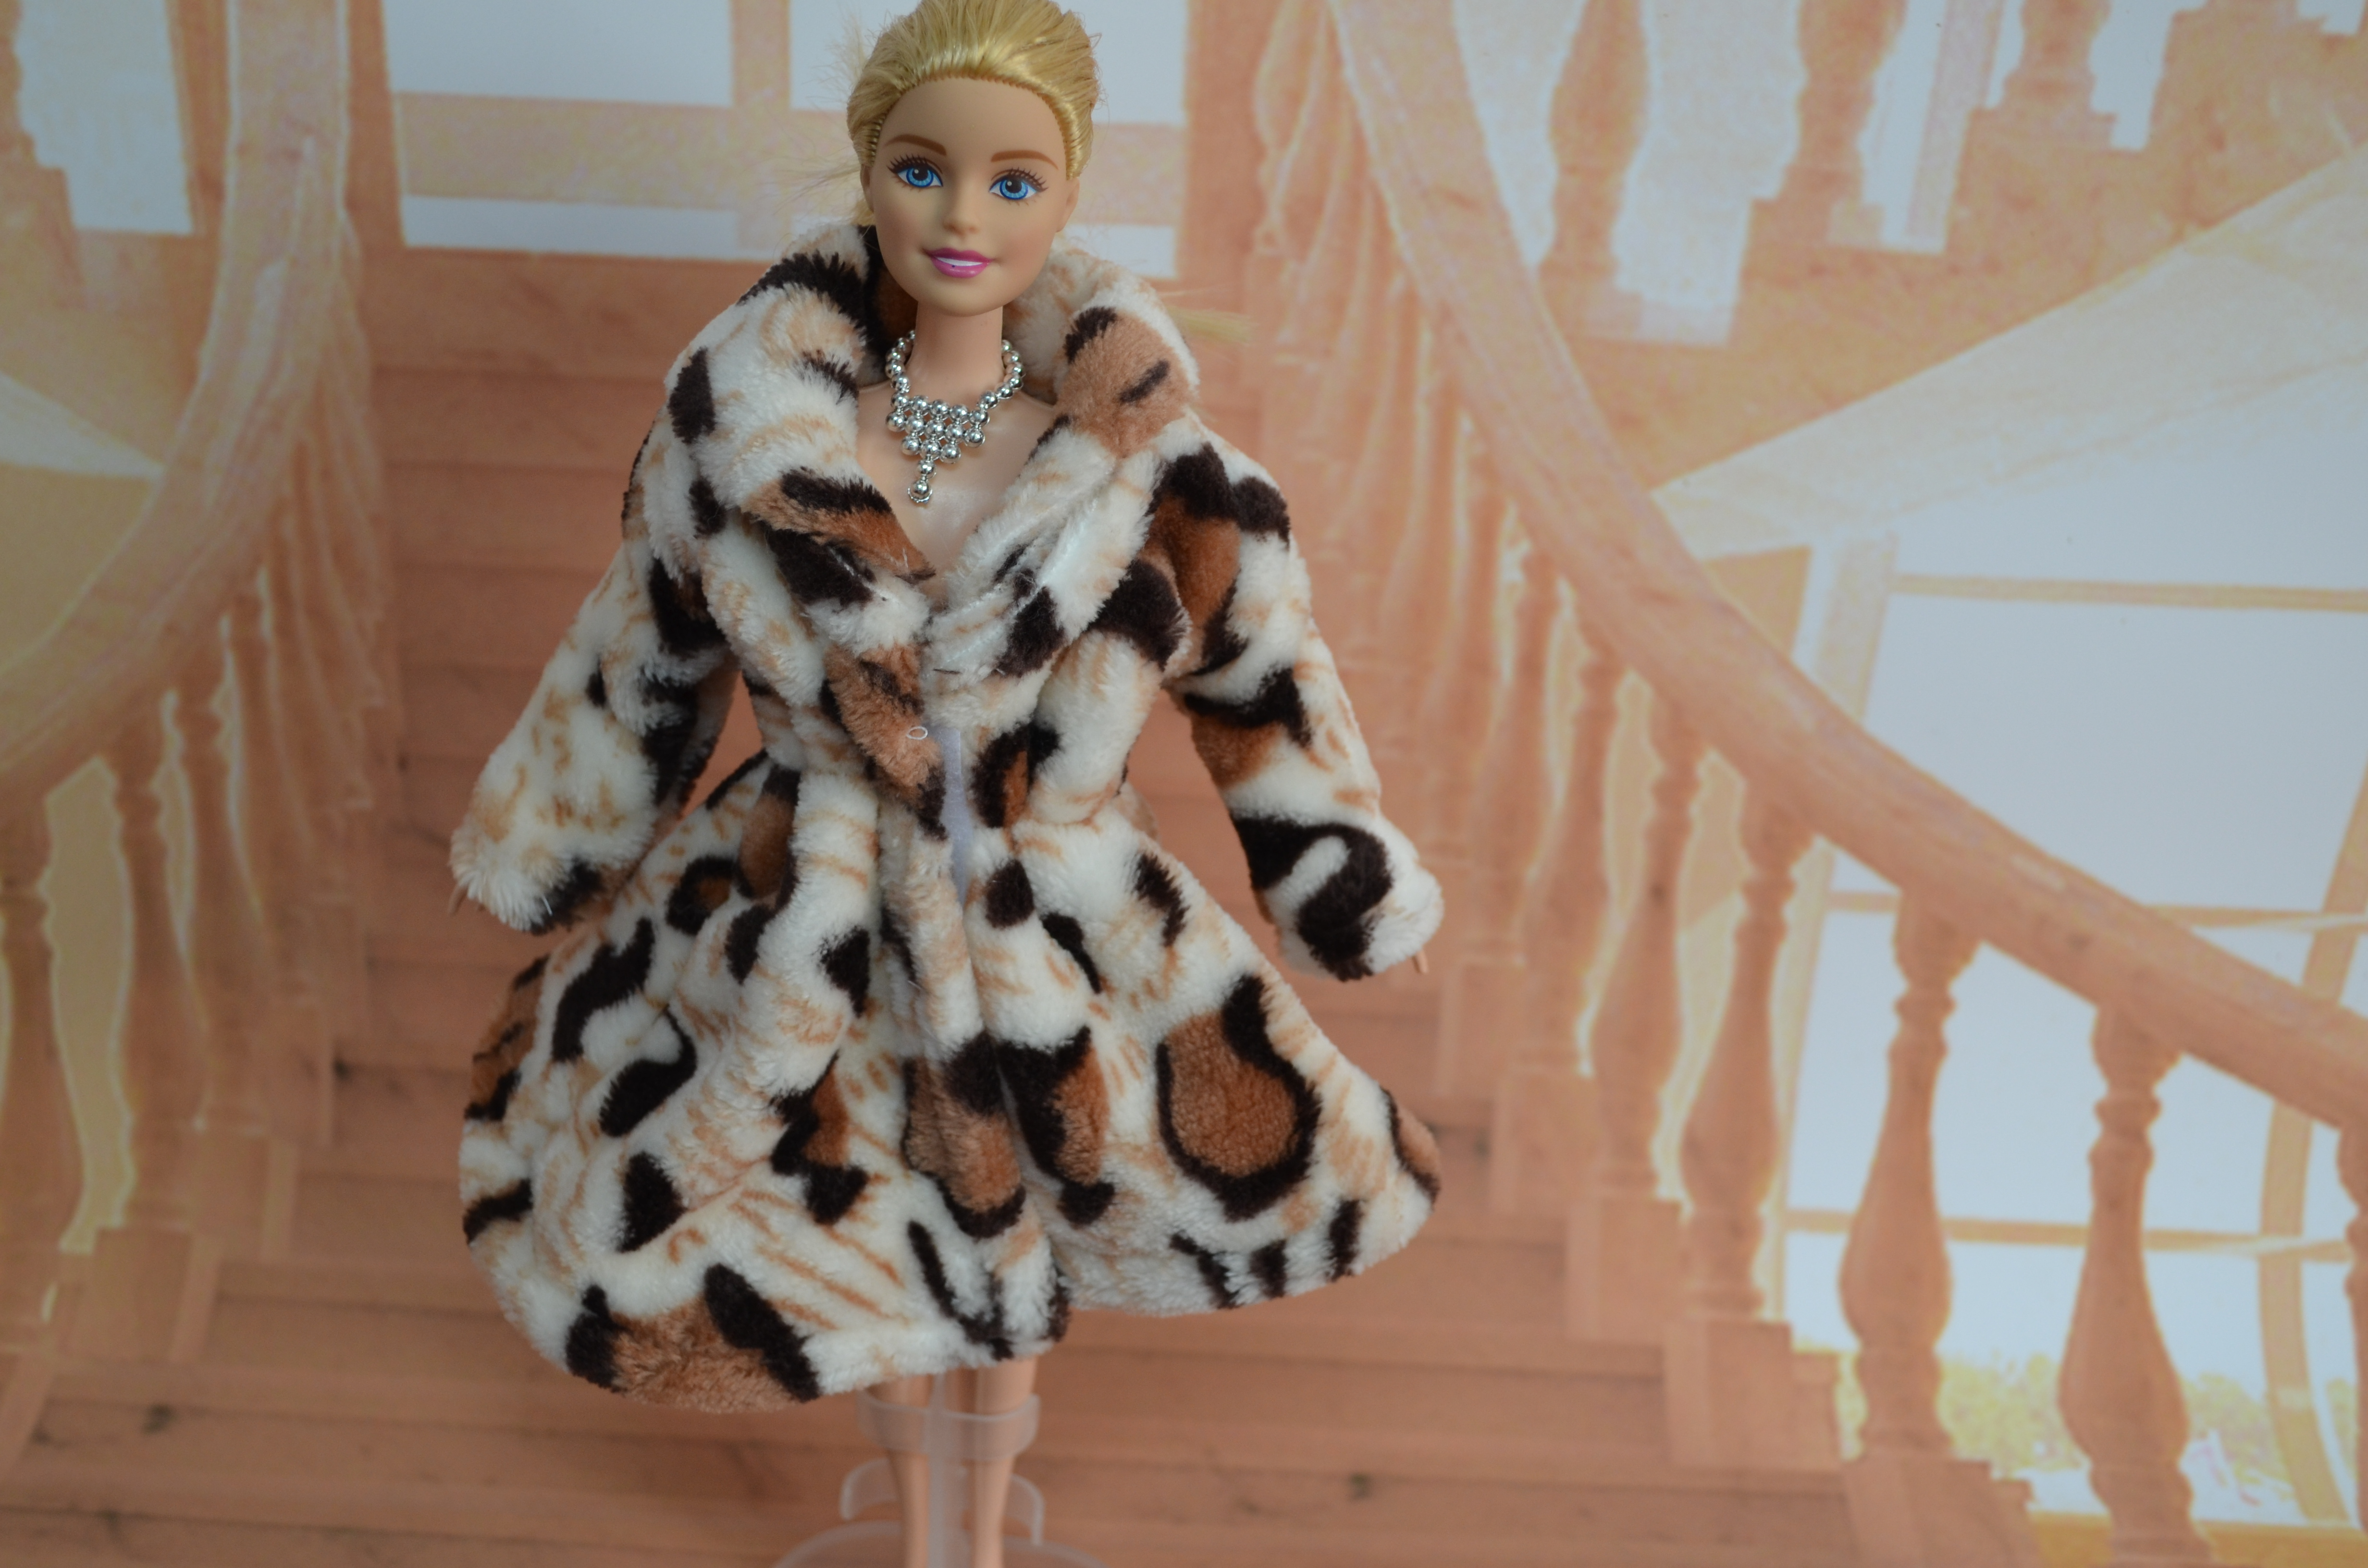 genuine for Barbie doll clothes clothing winter coat black leopard variety of fashion fashionista beautiful clothing accessories